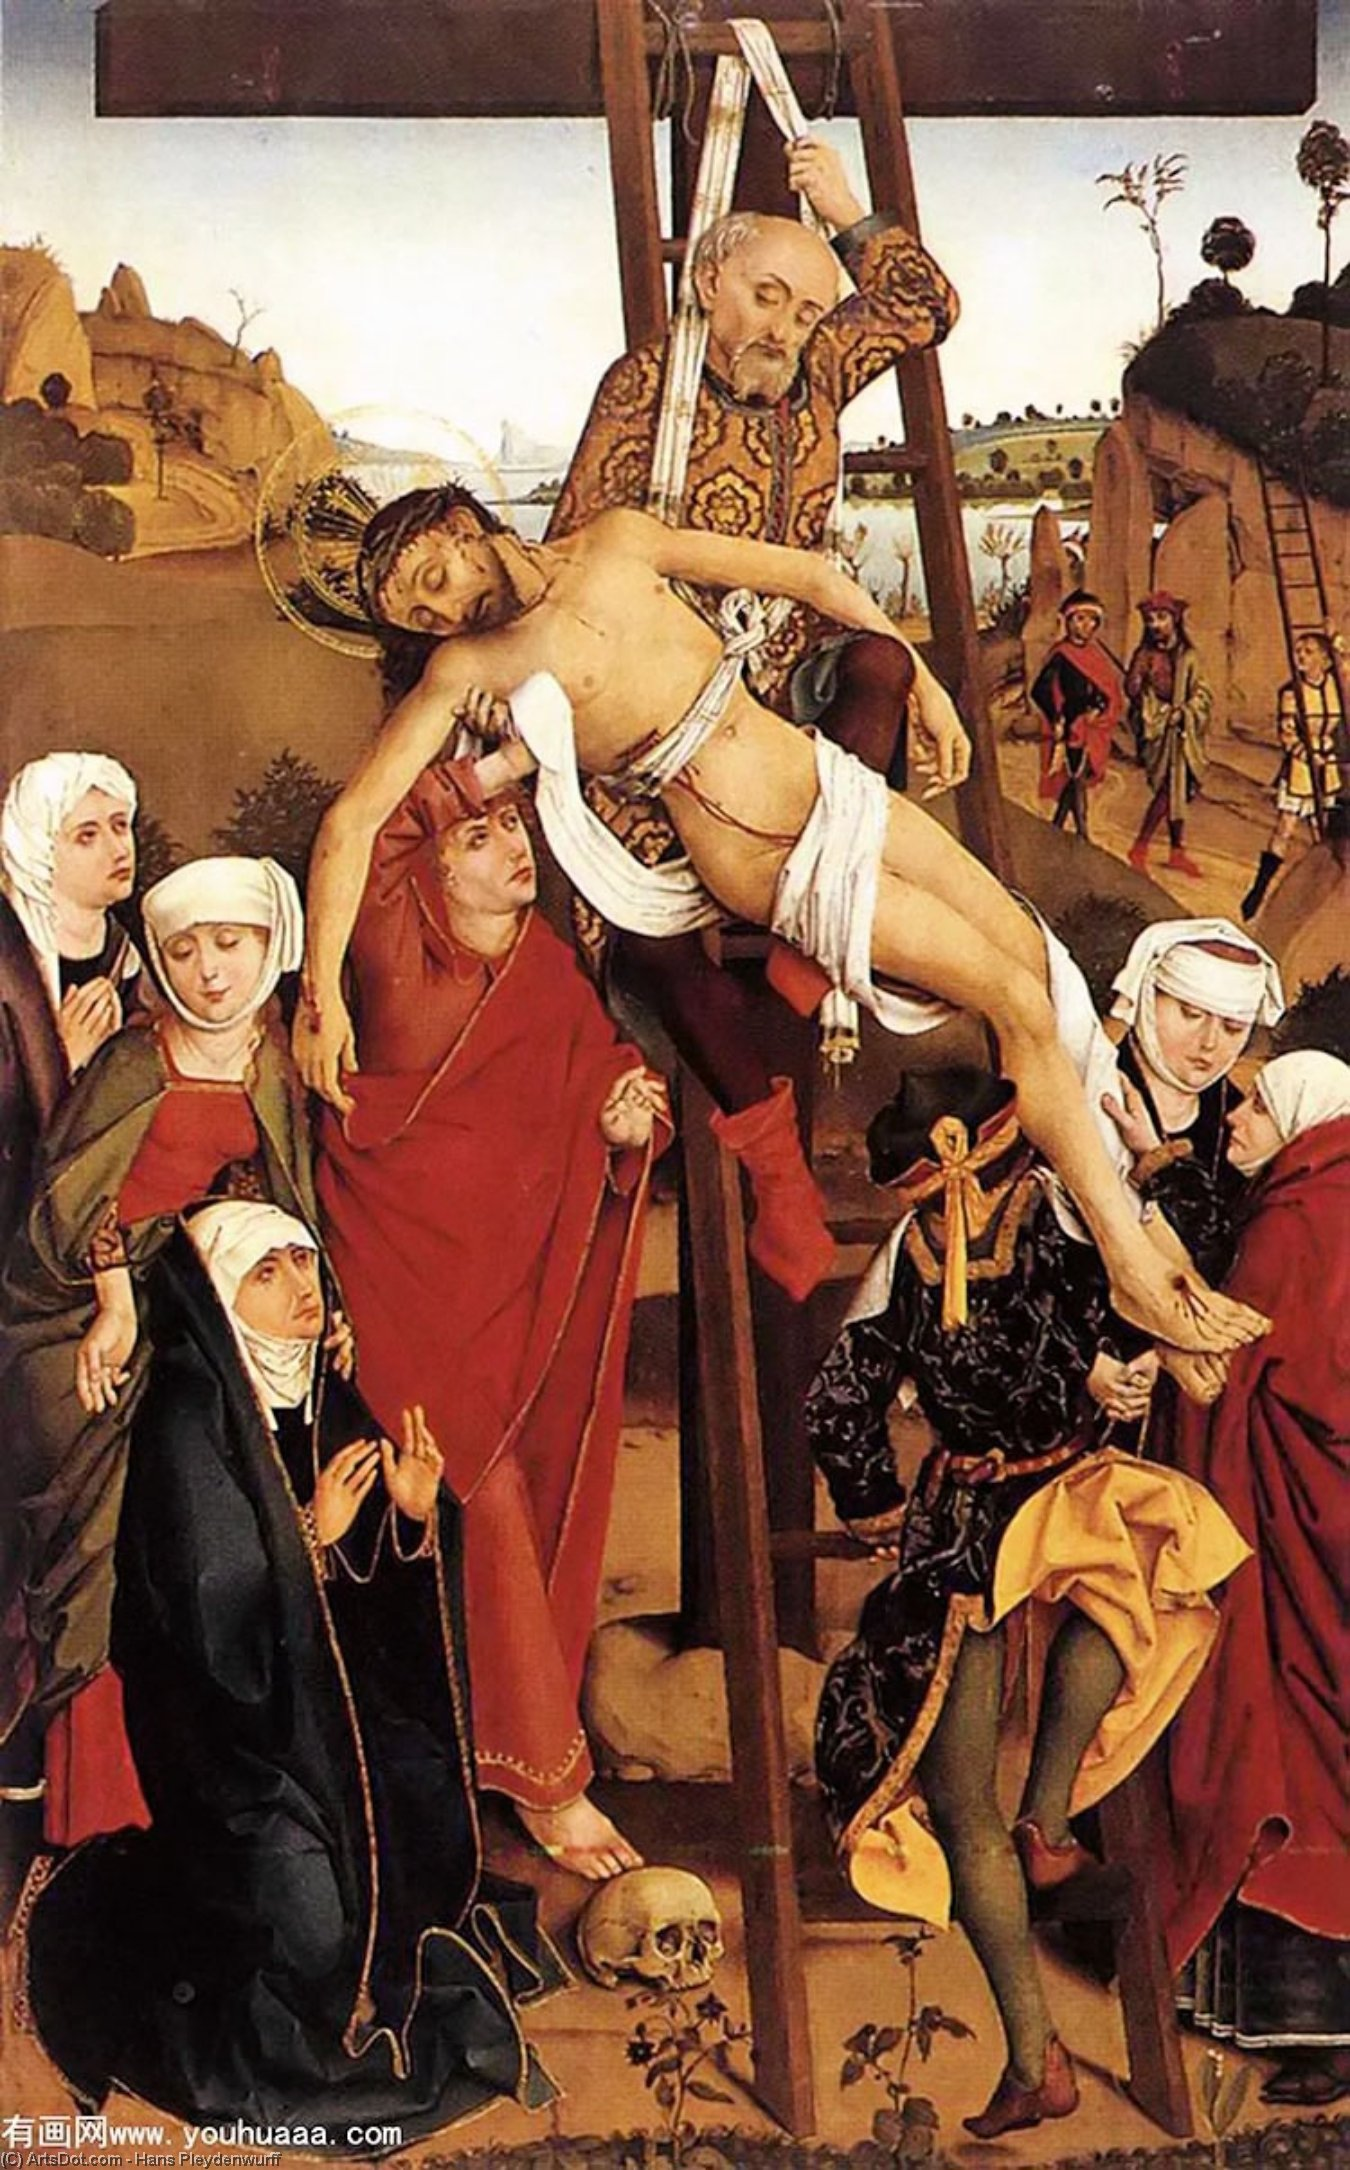 Wikioo.org - The Encyclopedia of Fine Arts - Painting, Artwork by Hans Pleydenwurff - Crucifixion of the Hof Altarpiece